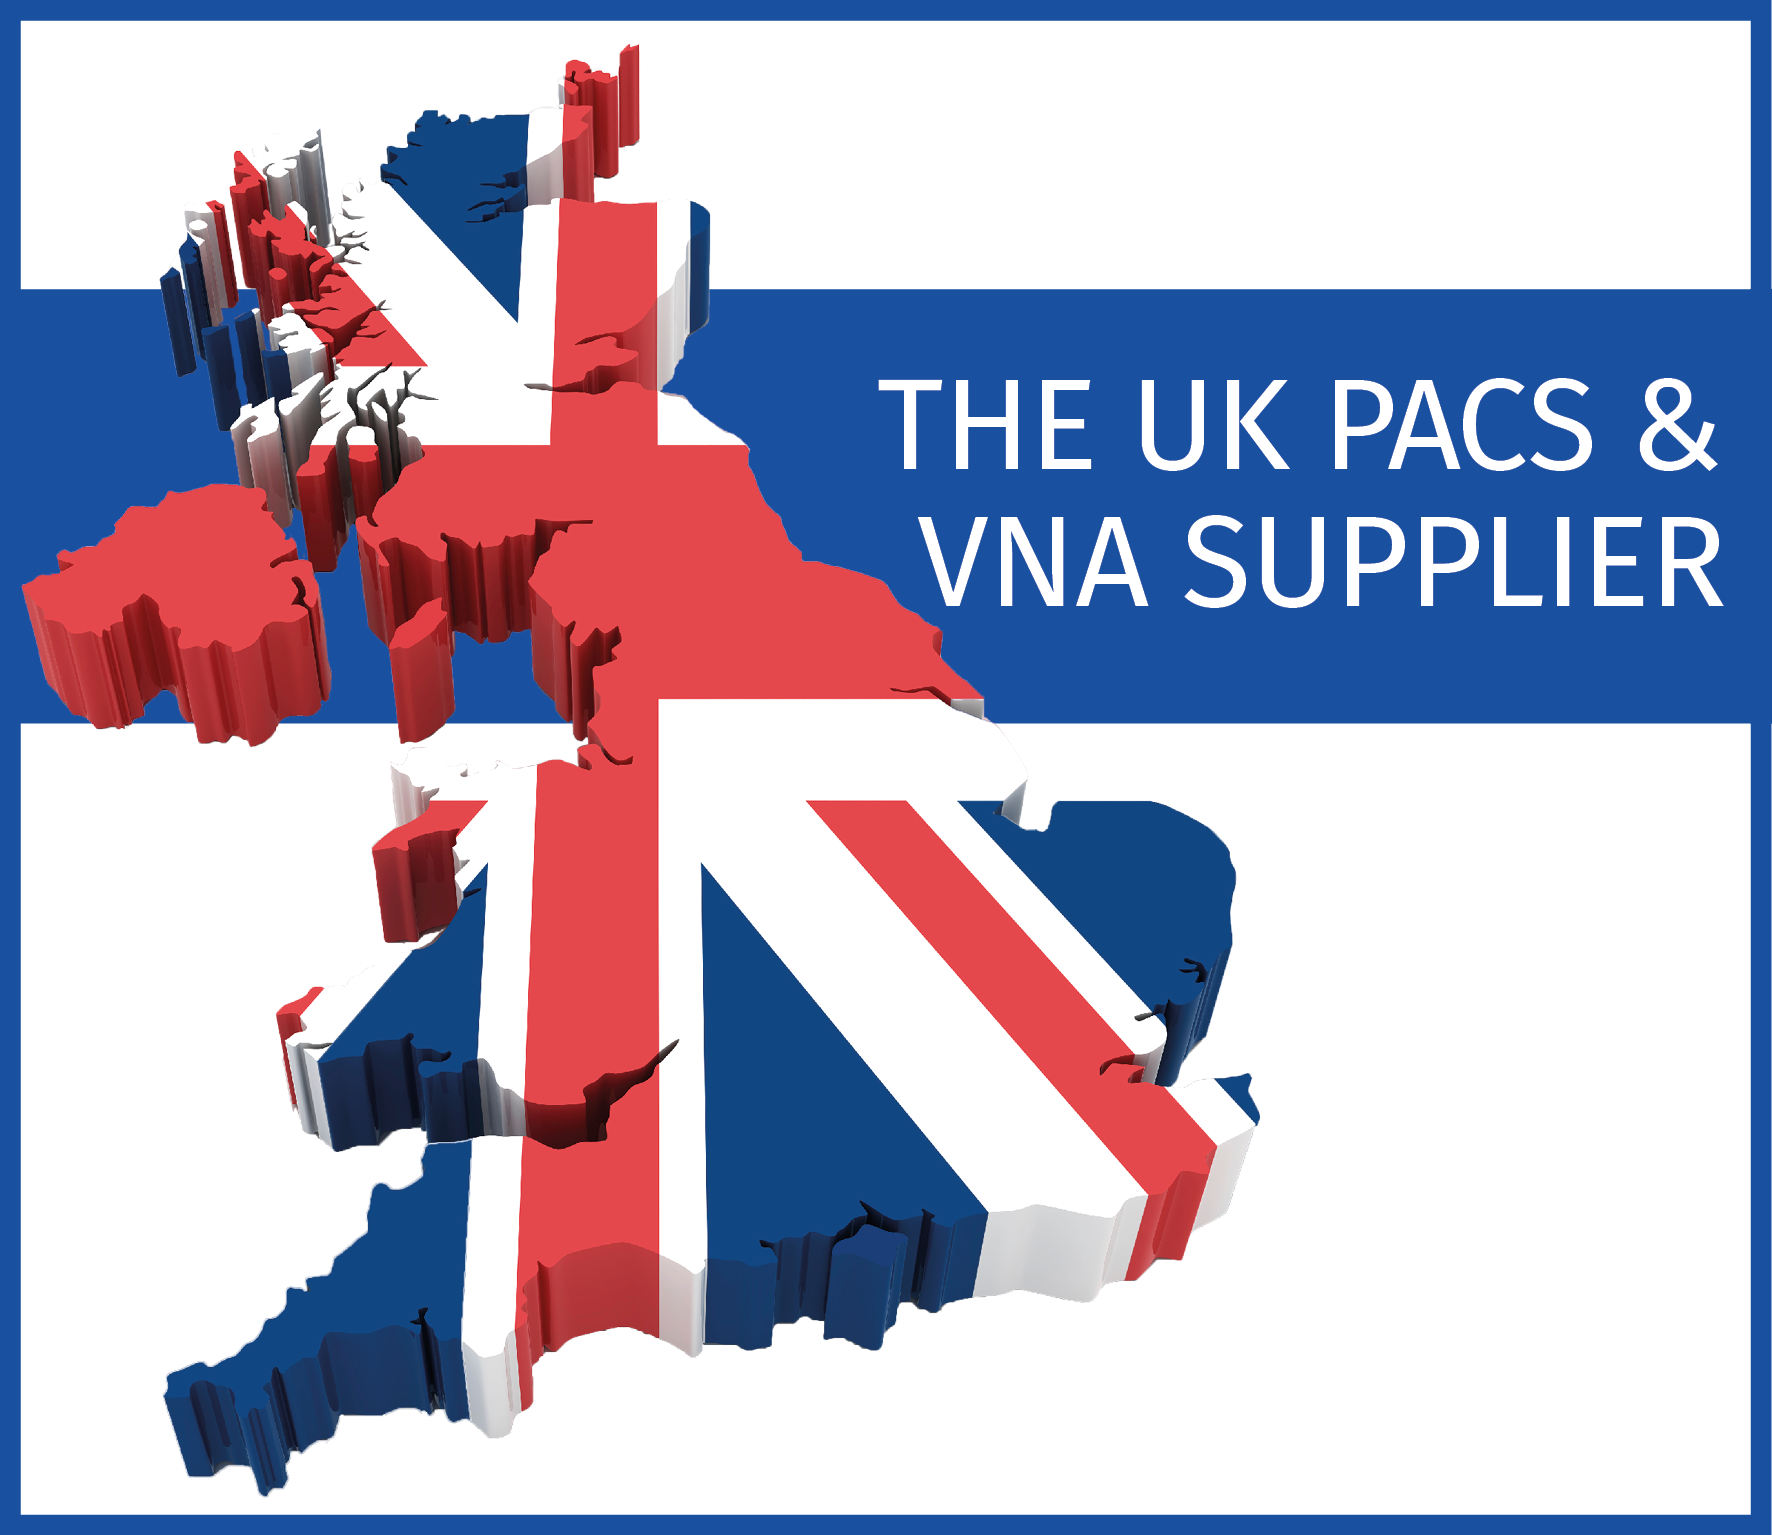 THE UK PACS AND VNA SUPPLIER - INSIGNIA.png